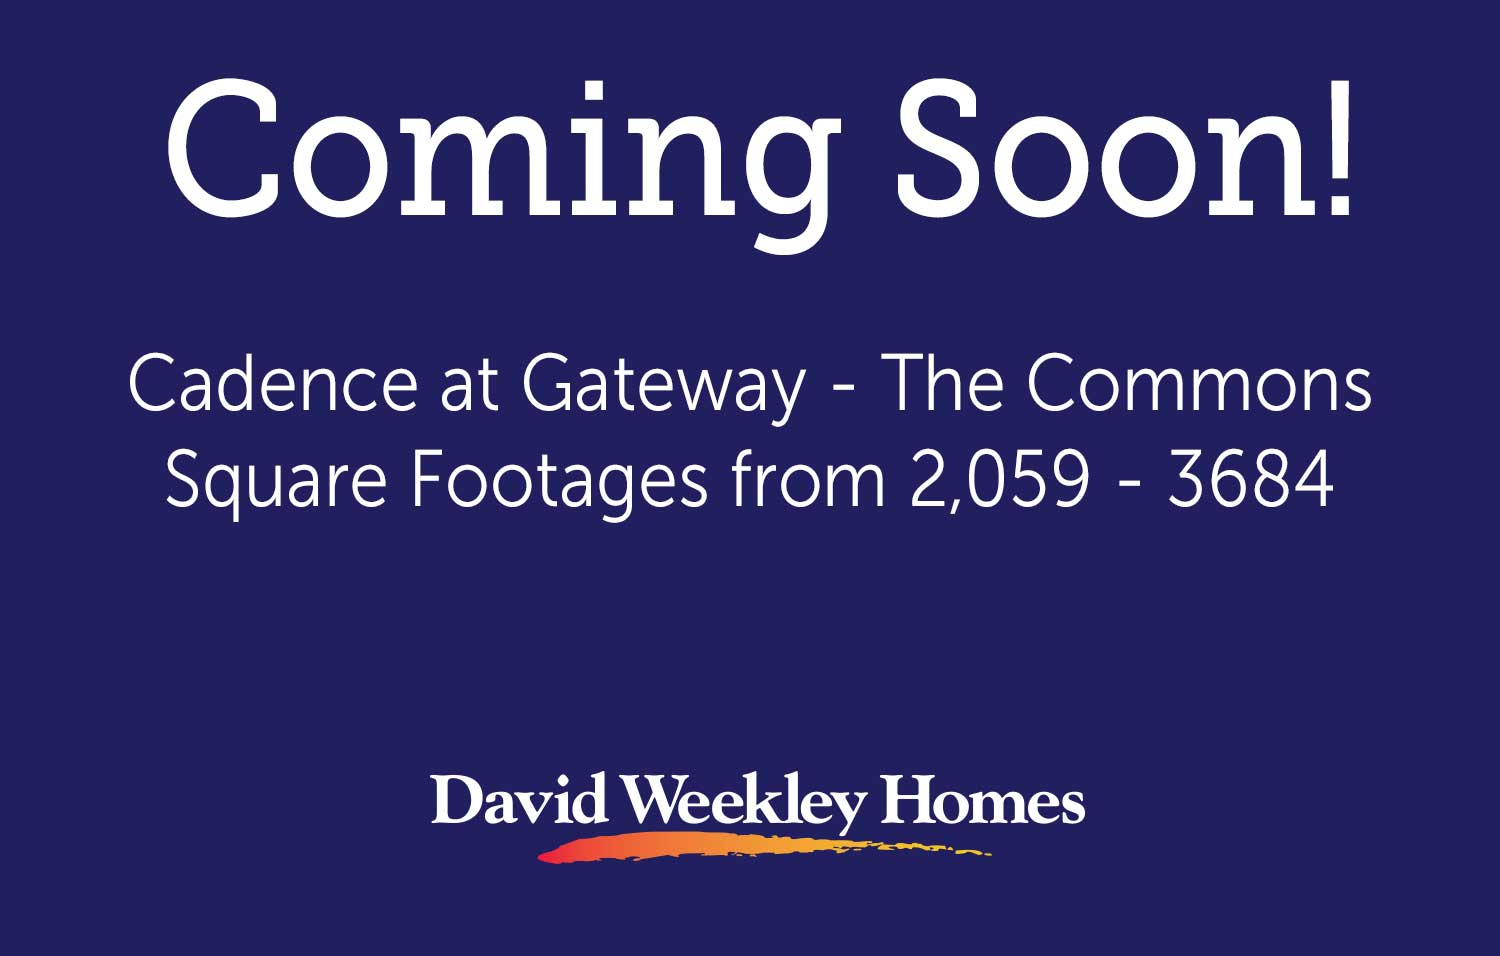 Coming Soon Cadence at Gateway - The Commons1!